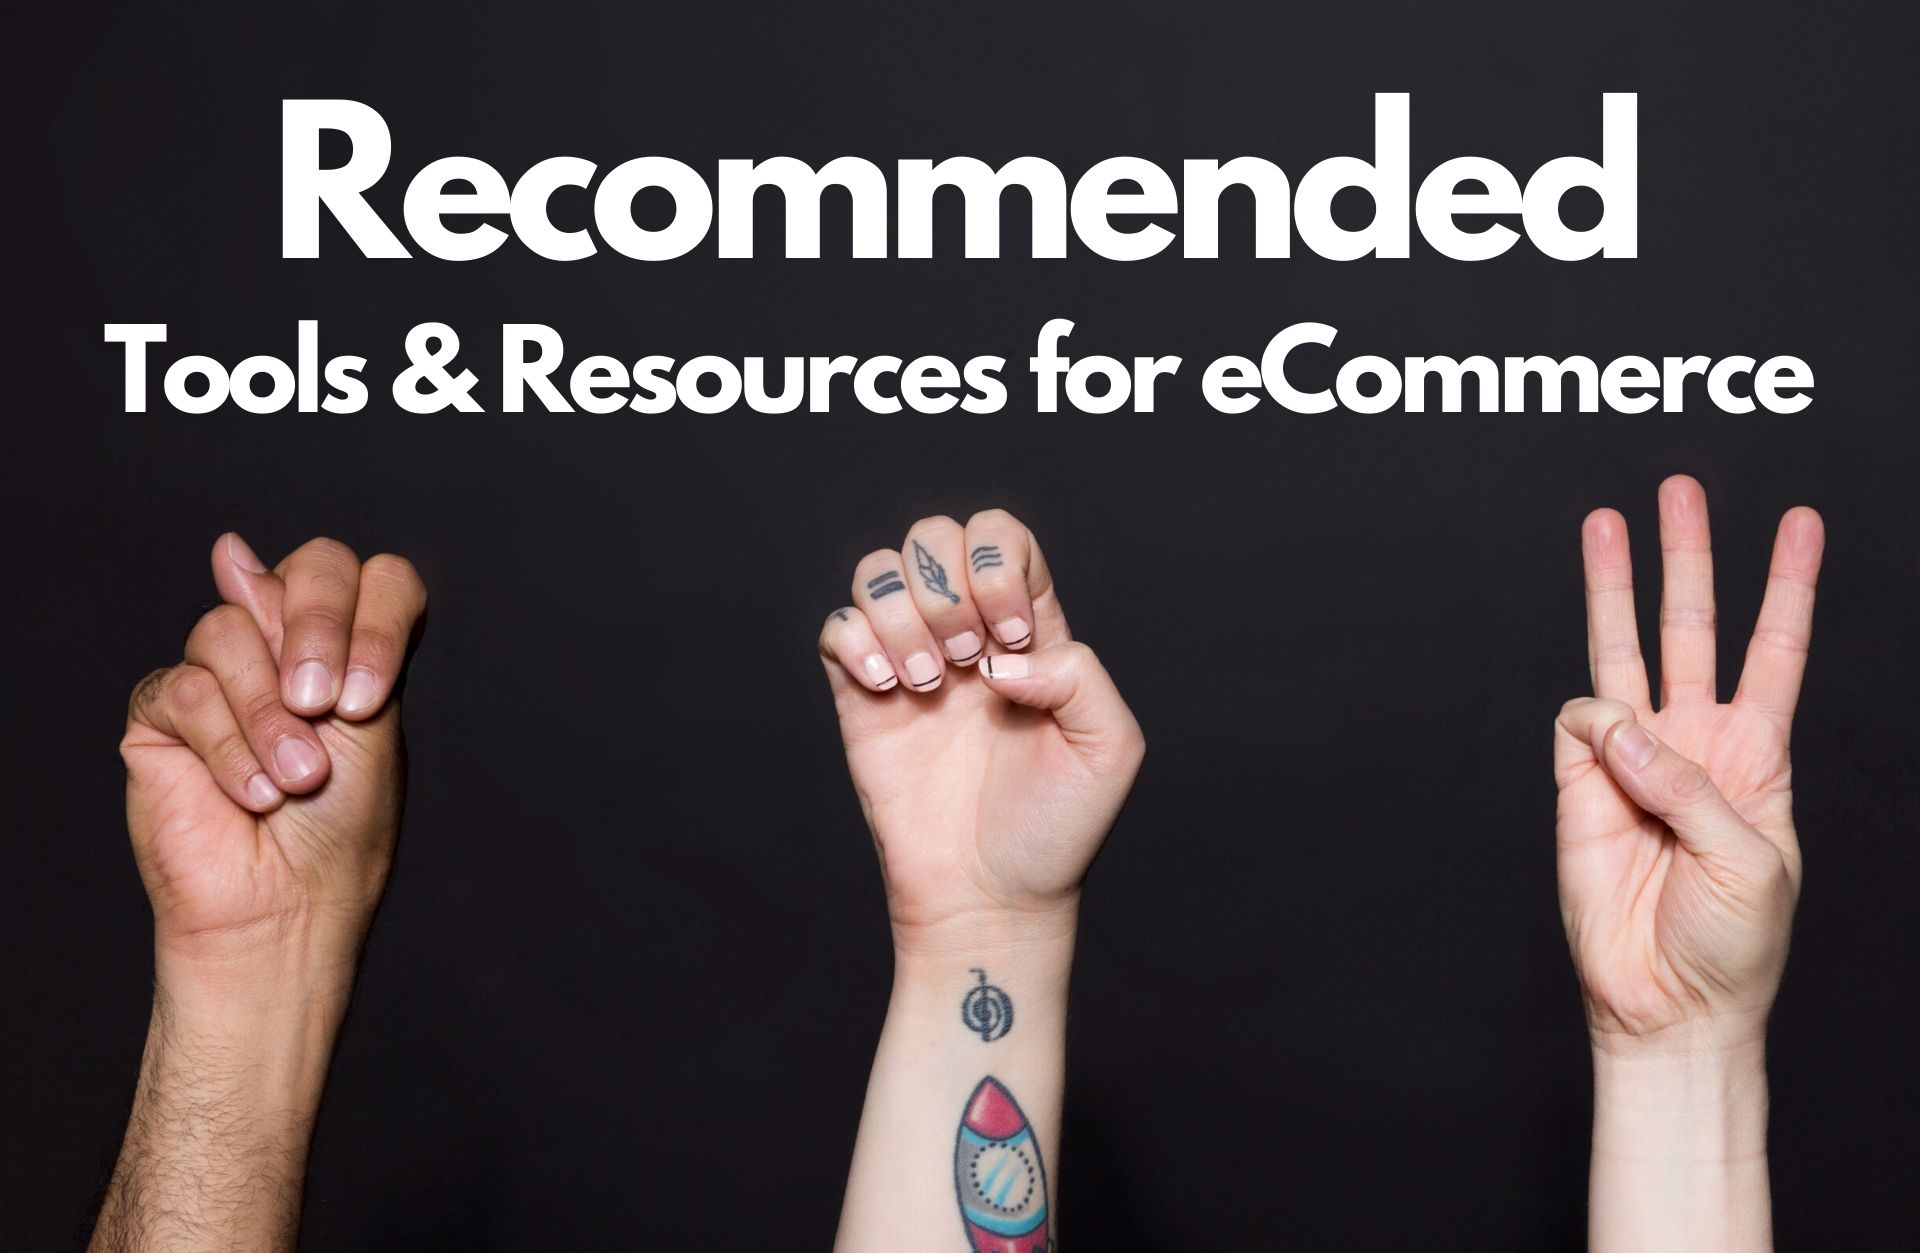 Recommended ecommerce tools and resources - ecomrecord